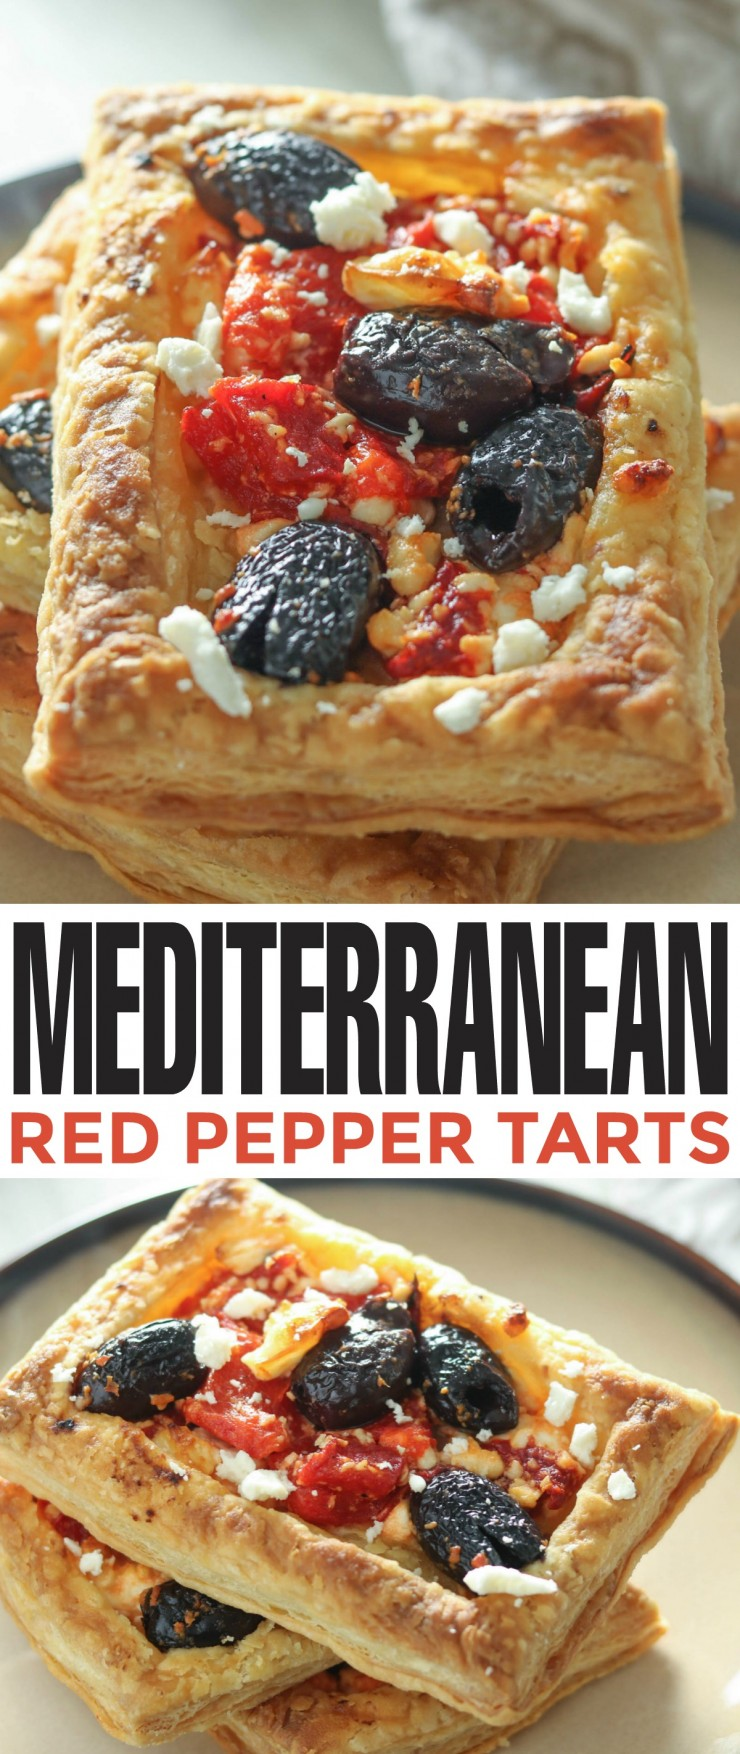 These Mediterranean Red Pepper Tarts make for a flavourful party starter that are quick and easy to make.